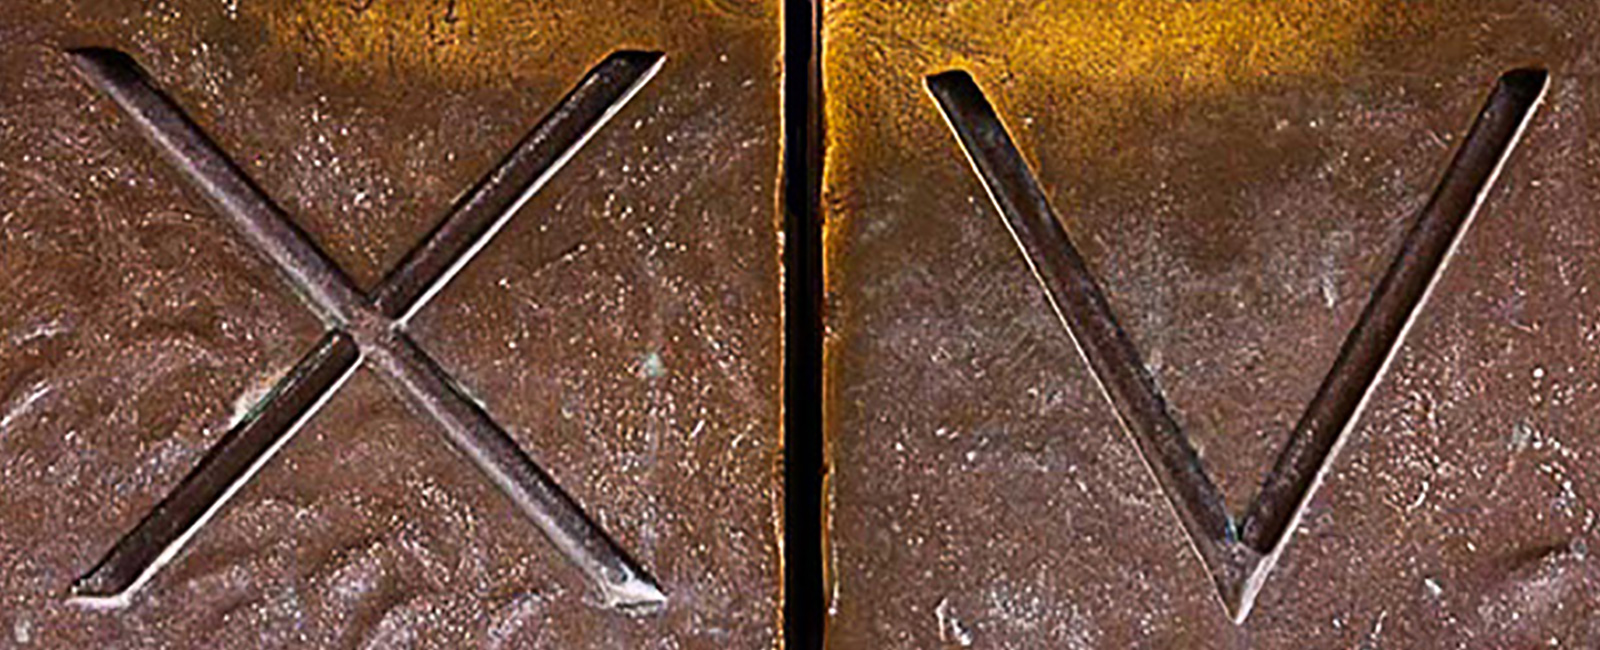 The letter X and the letter V which are our door knobs on the front doors of the hotel